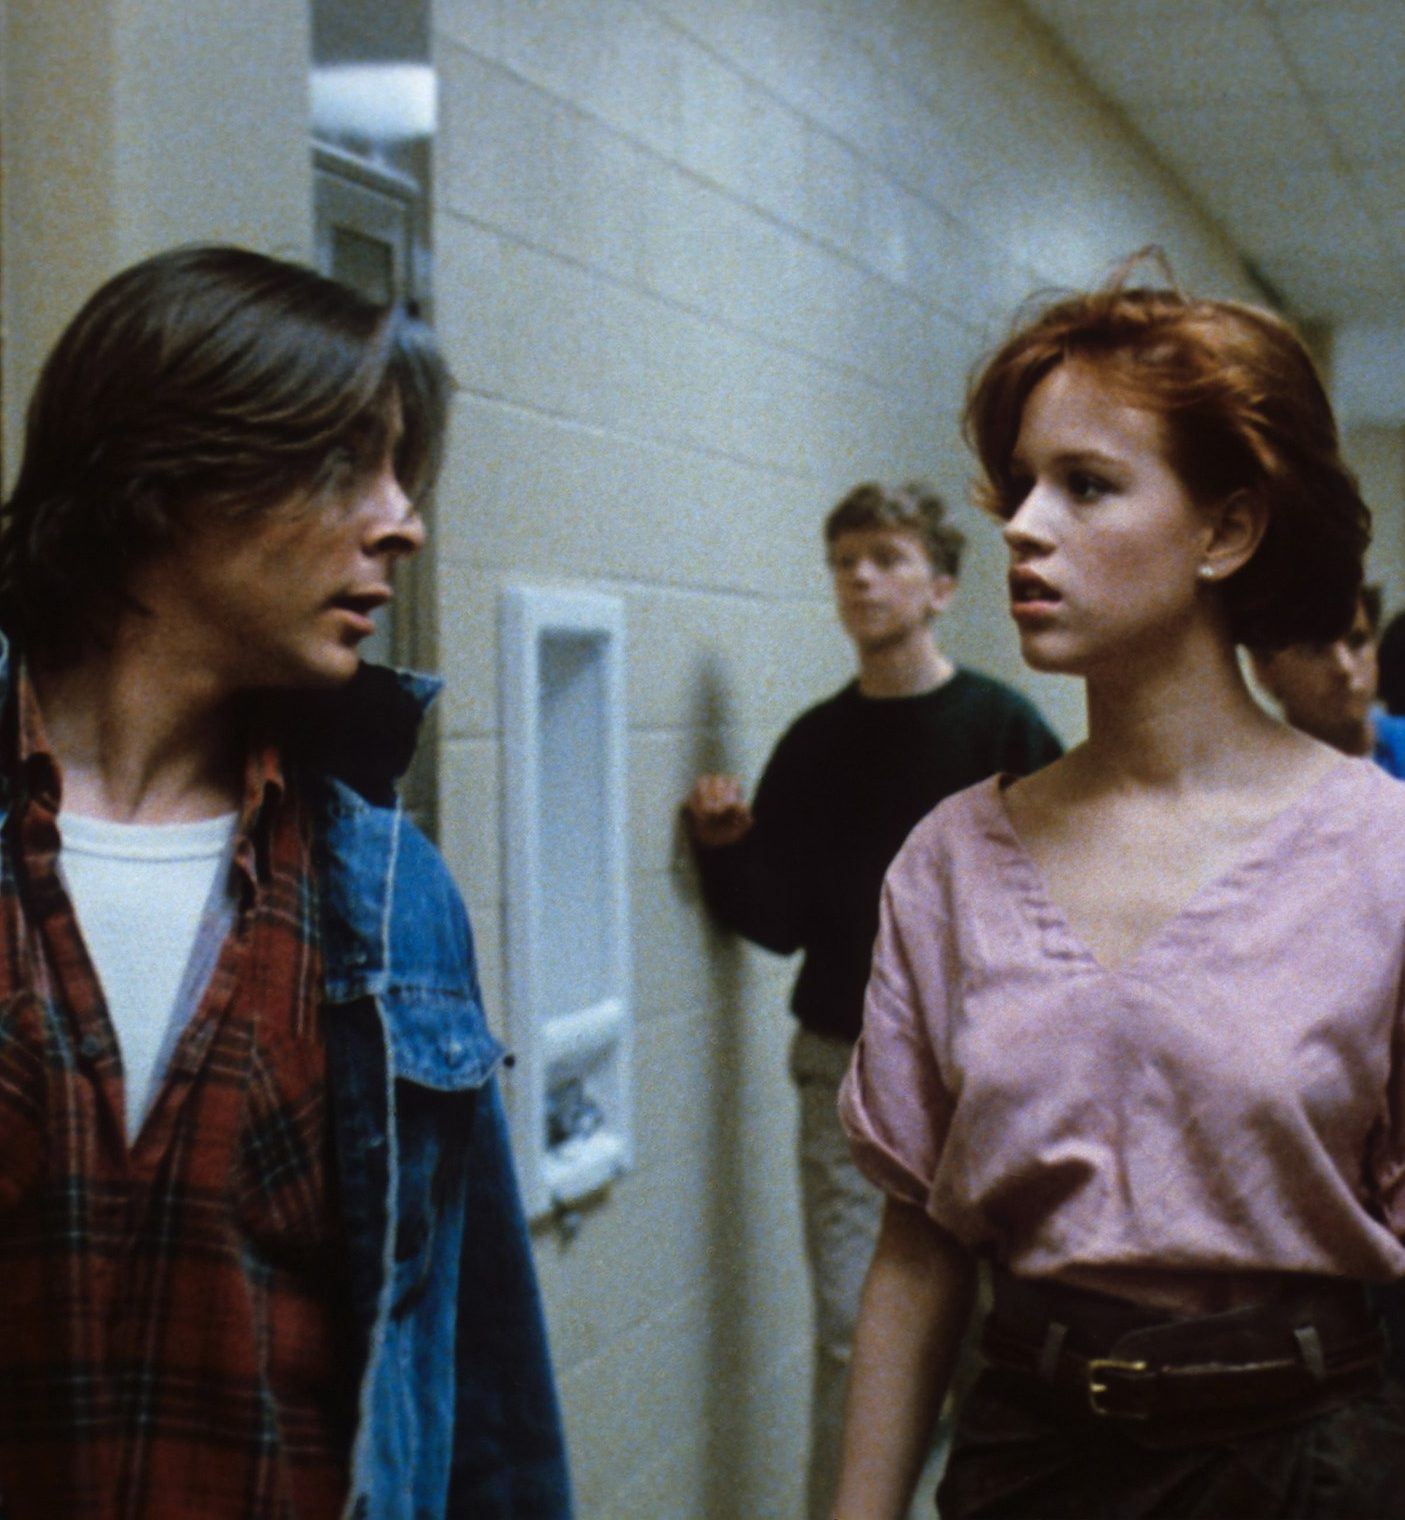 molly ringwald the breakfast club interview 01 e1584002690380 20 80s Movie Moments That Have Aged Horribly